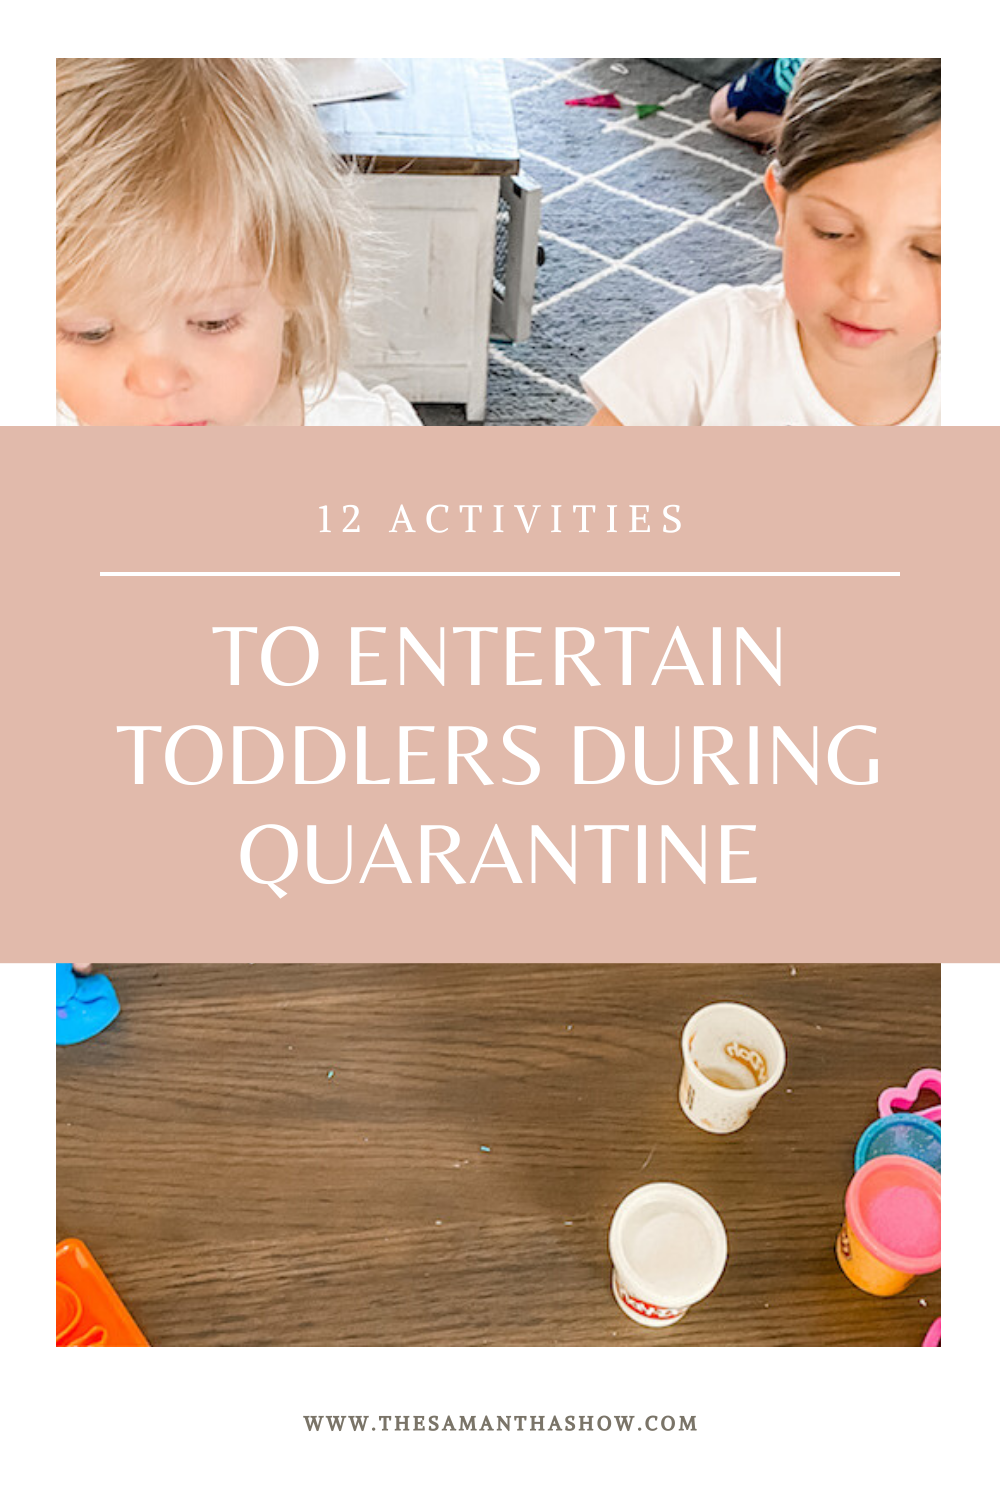 activities to entertain toddlers during quarantine